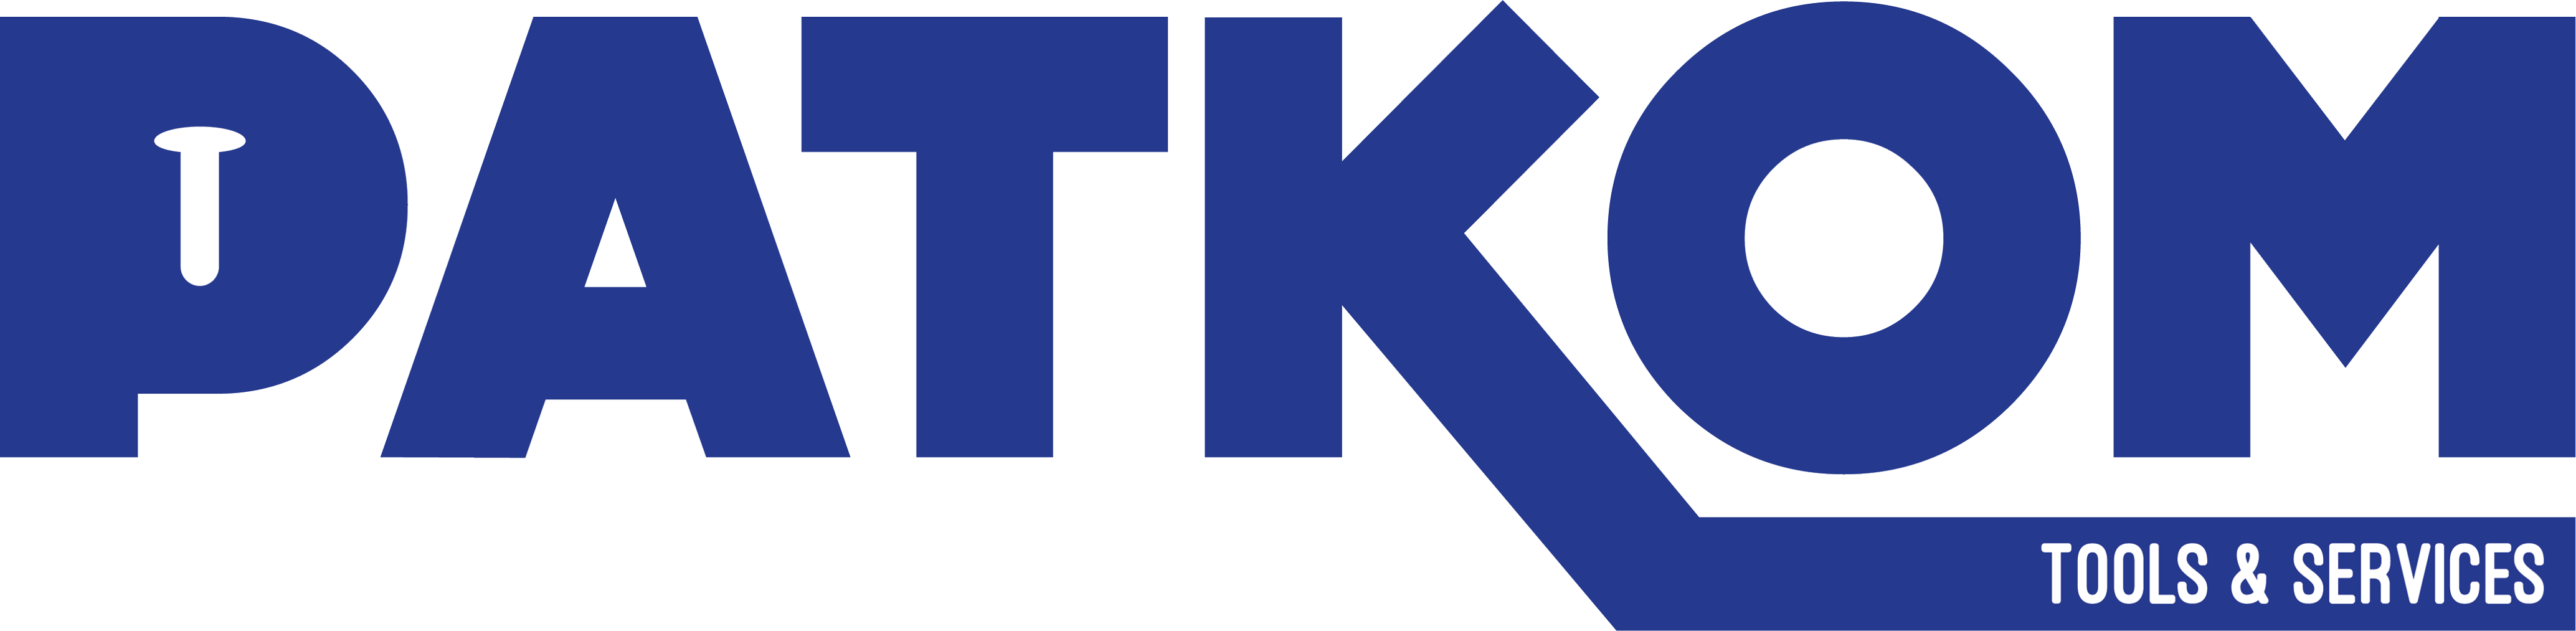 patkom-tools-and-services